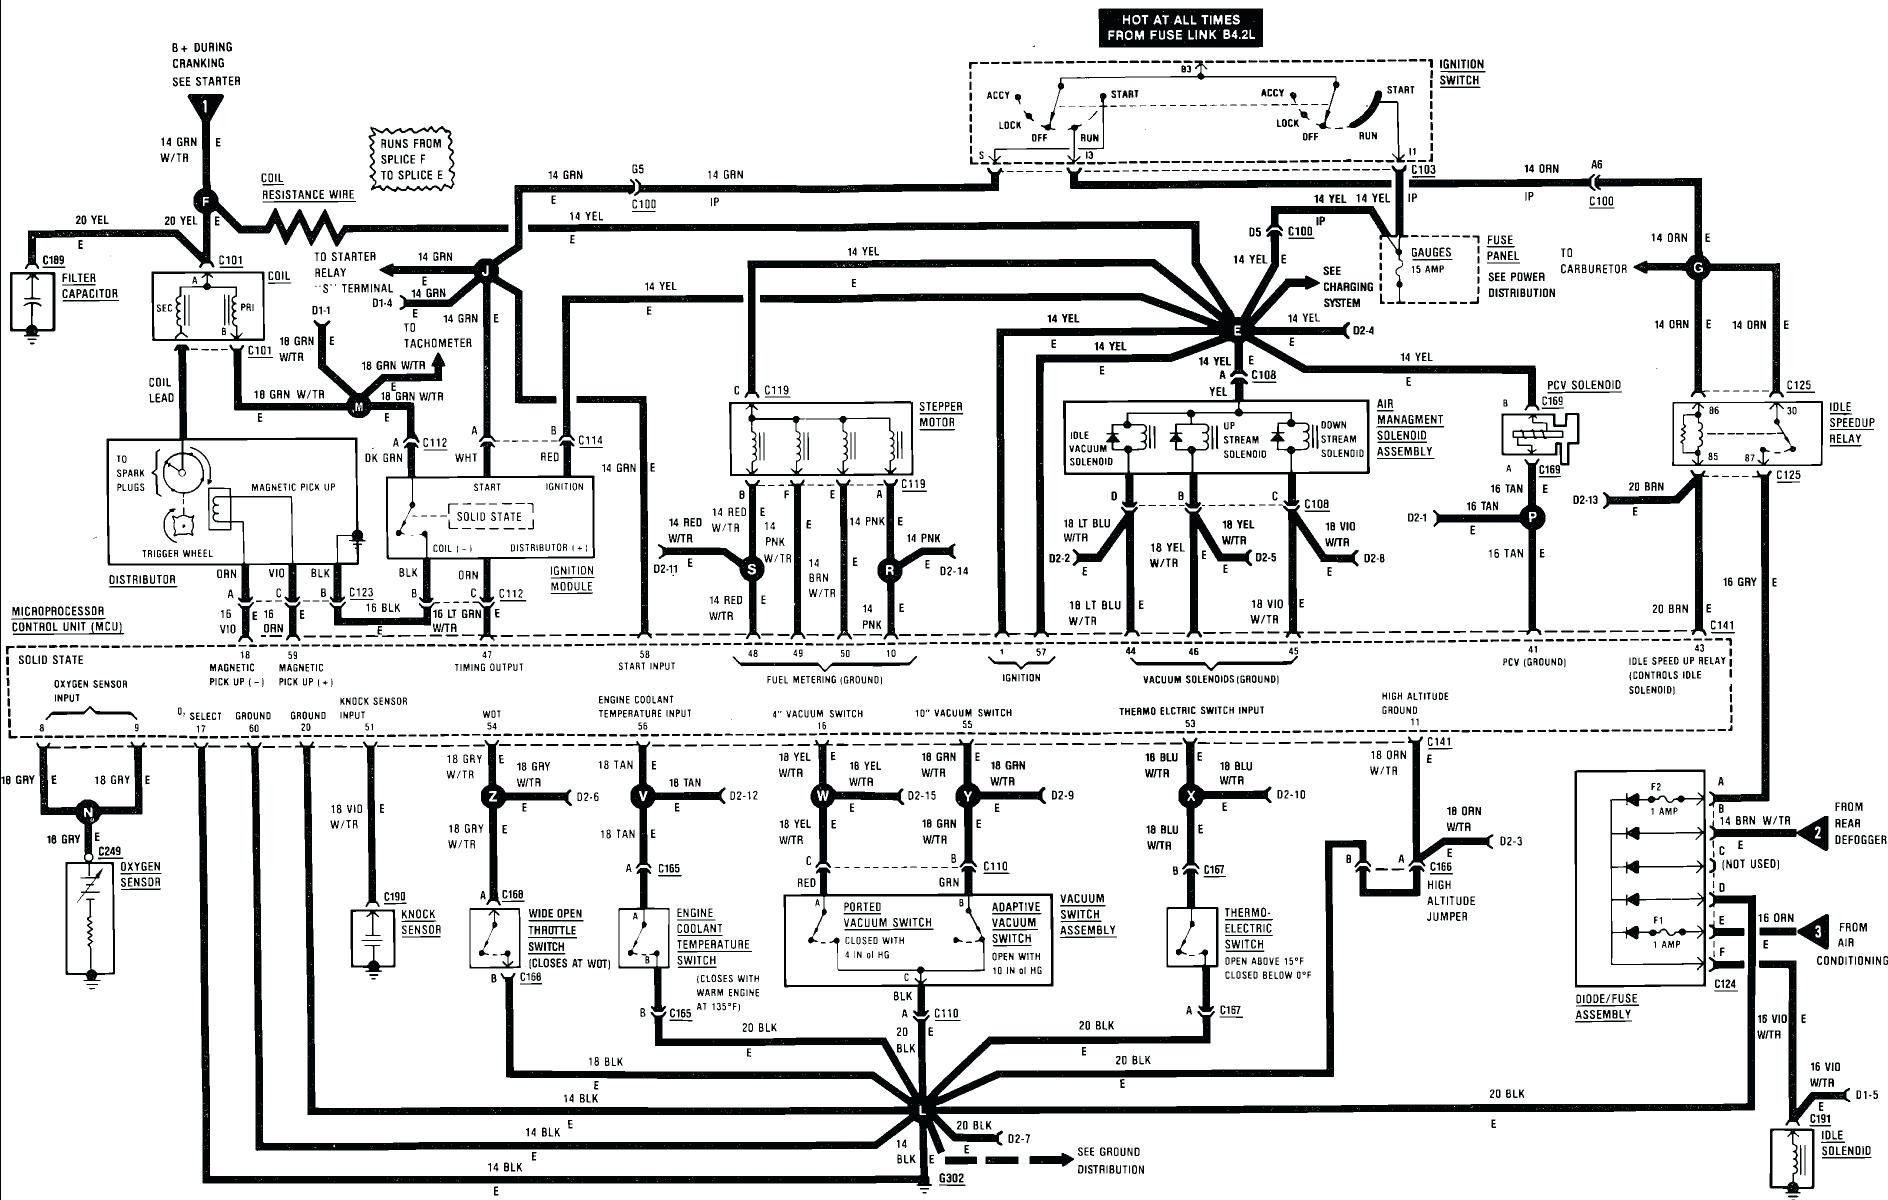 2000 Mazda Millenia Fuse Box Cover Wiring Diagram Libraries Auto Electrical Diagram2000